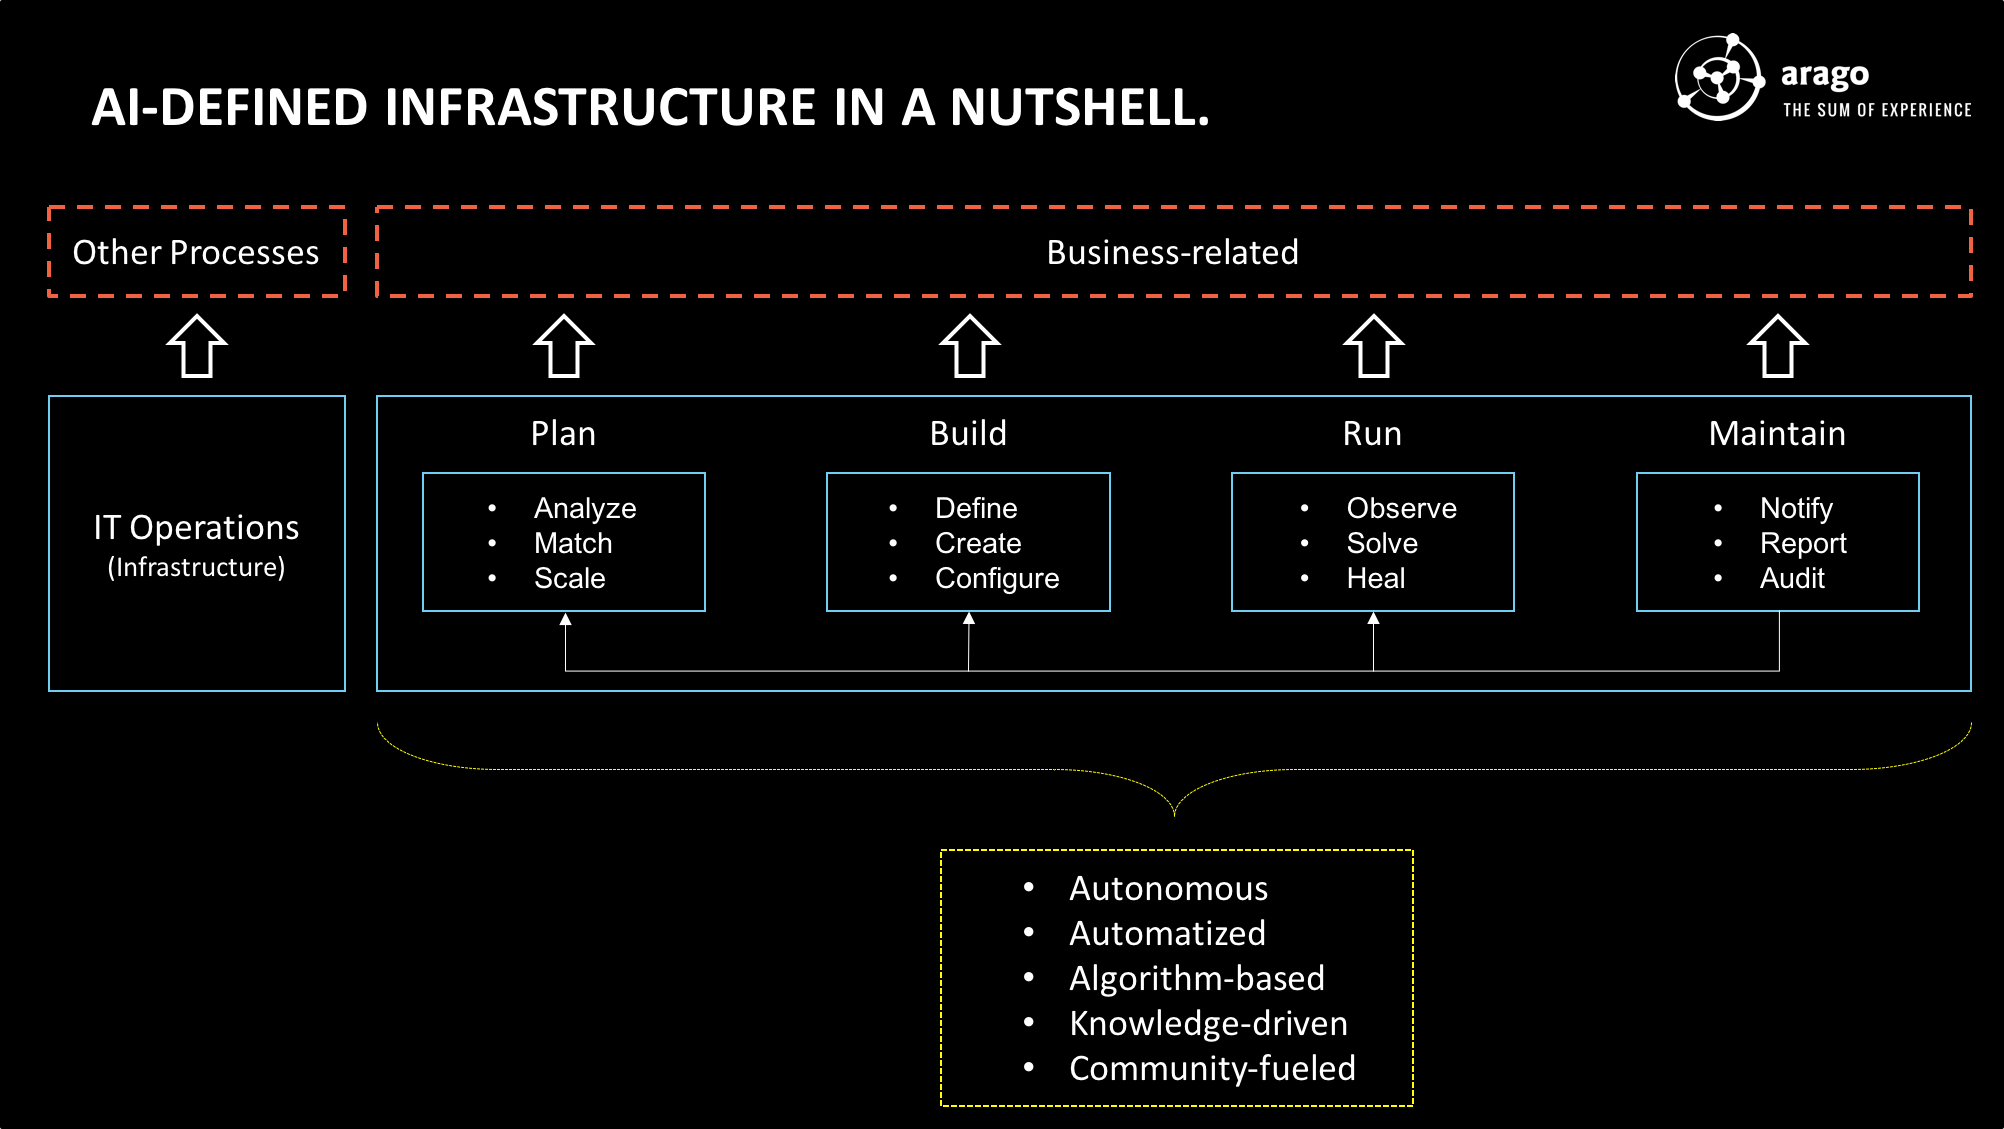 Figure: AI-defined Infrastructure in a Nutshell